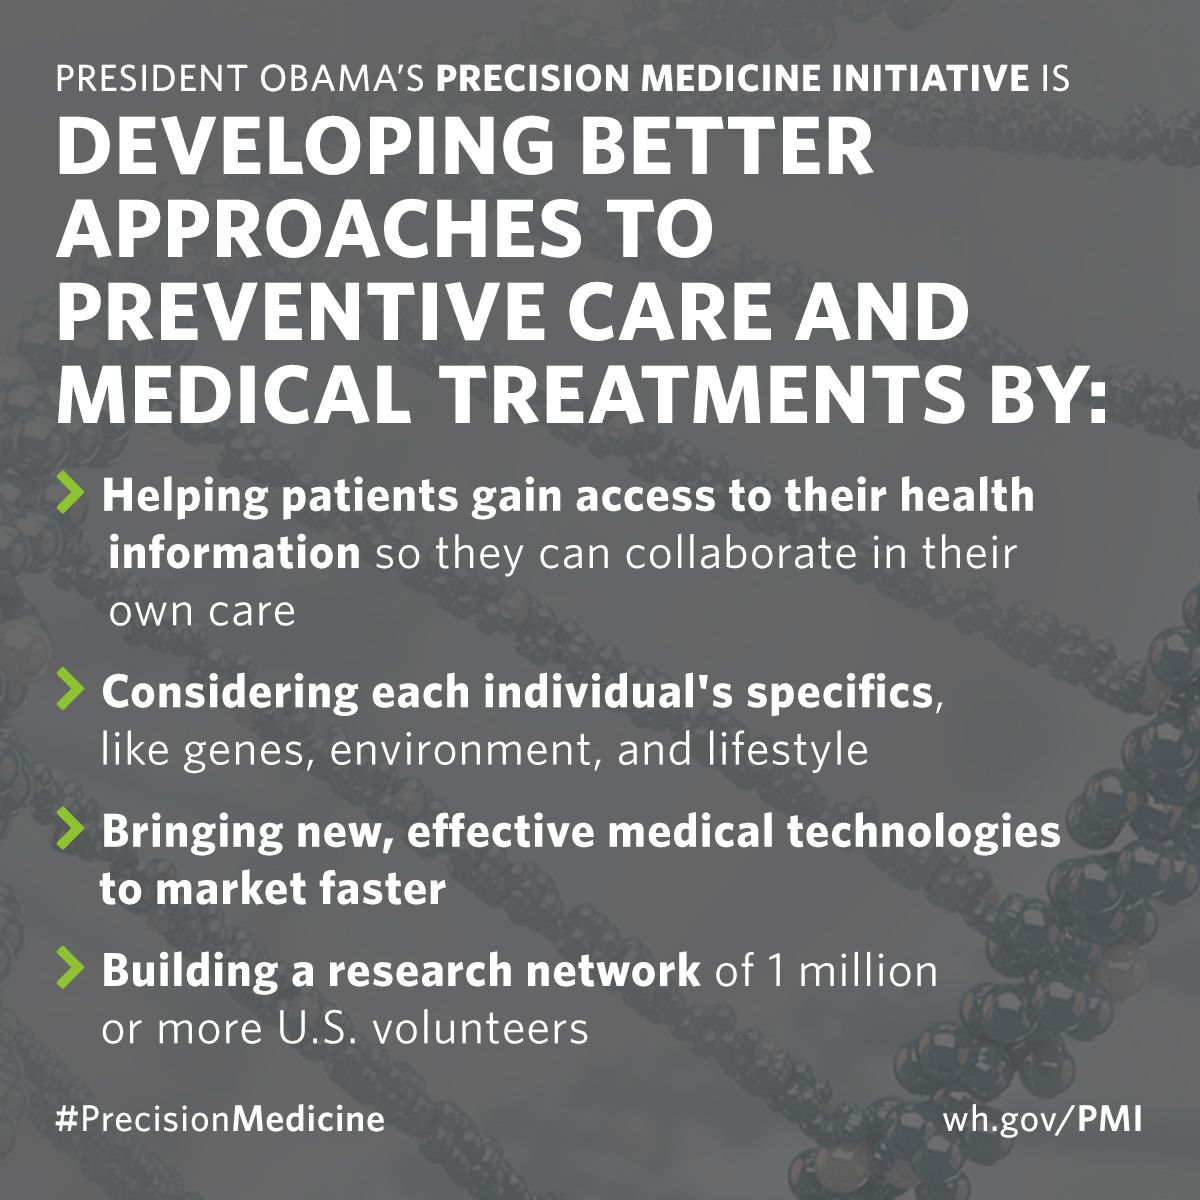 Precision medicine is developing better approaches to preventive care and medical treatments